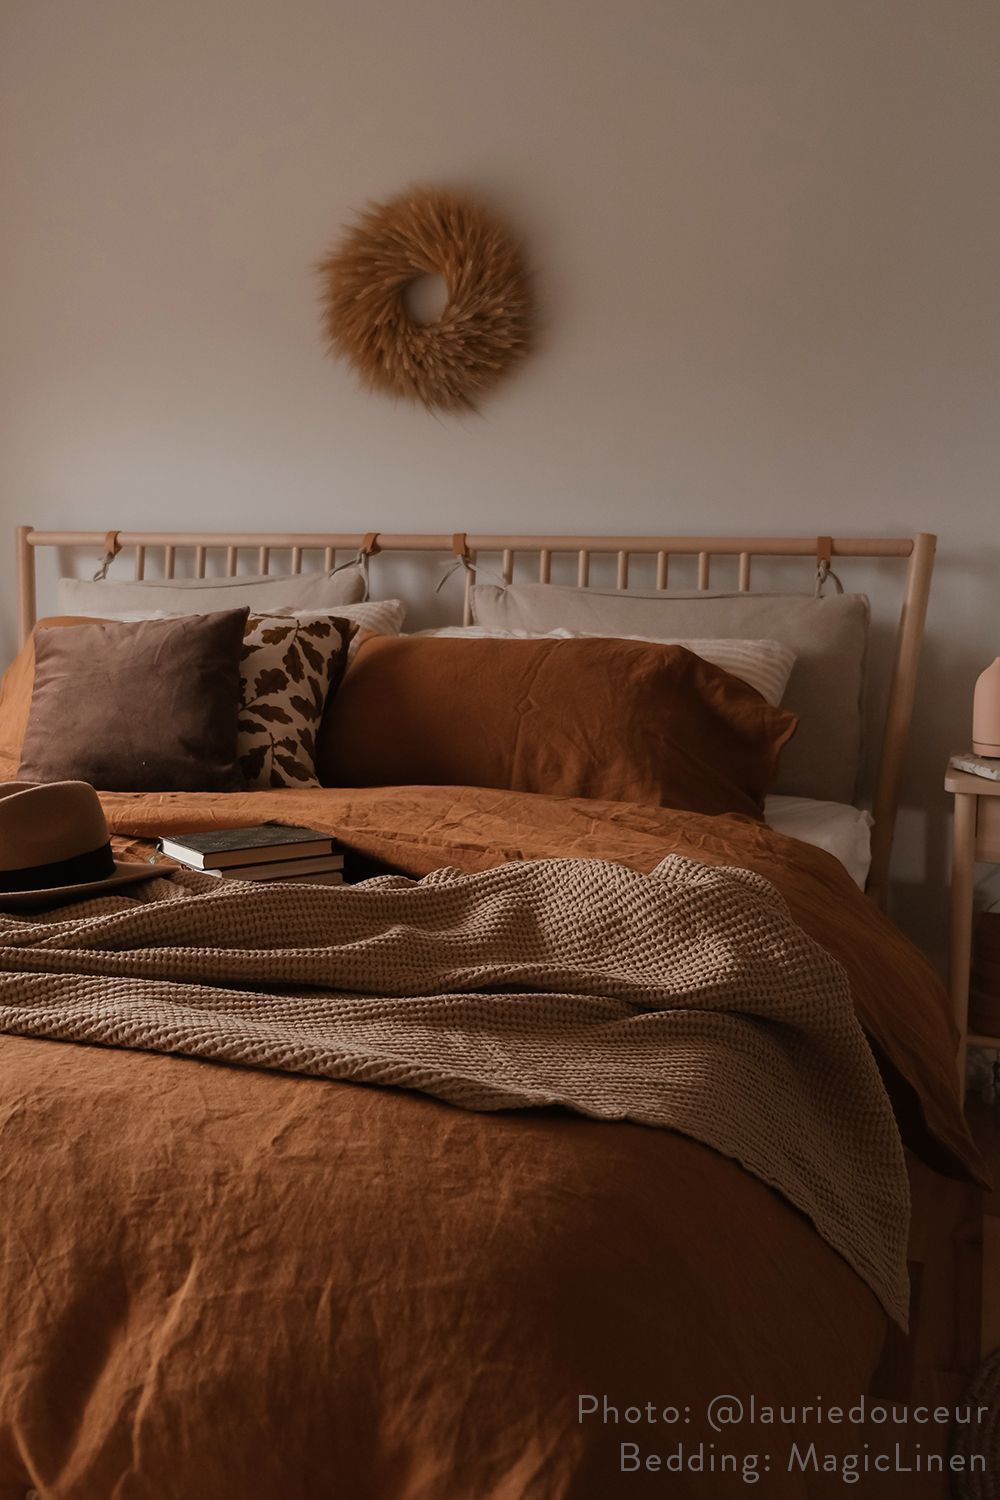 Cinnamon Bedding Styling - Design your bed with cinnamon bedding. On... -  Cinna... -  Cinnamon Bedding Styling – Design your bed with cinnamon bedding. On… –  Cinnamon Bedding Sty - #Bed #Bedding #boysbedroom #Cinna #Cinnamon #design #linenbedideas #minimalistbedroommen #sofabeddiy #Styling